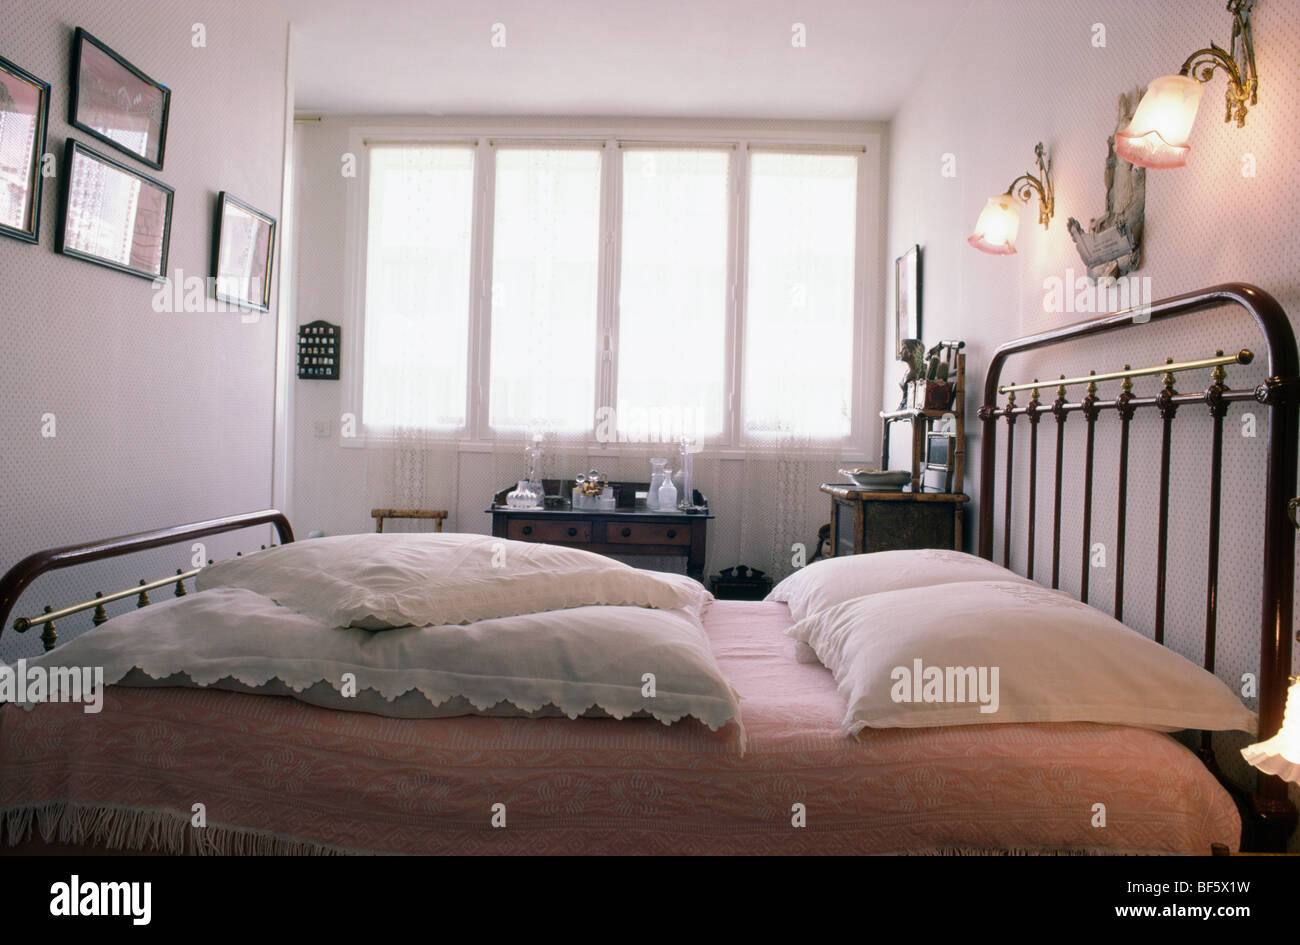 lights above bed victorian glass walllights above black metal bed with white lace pillows in small bedroom